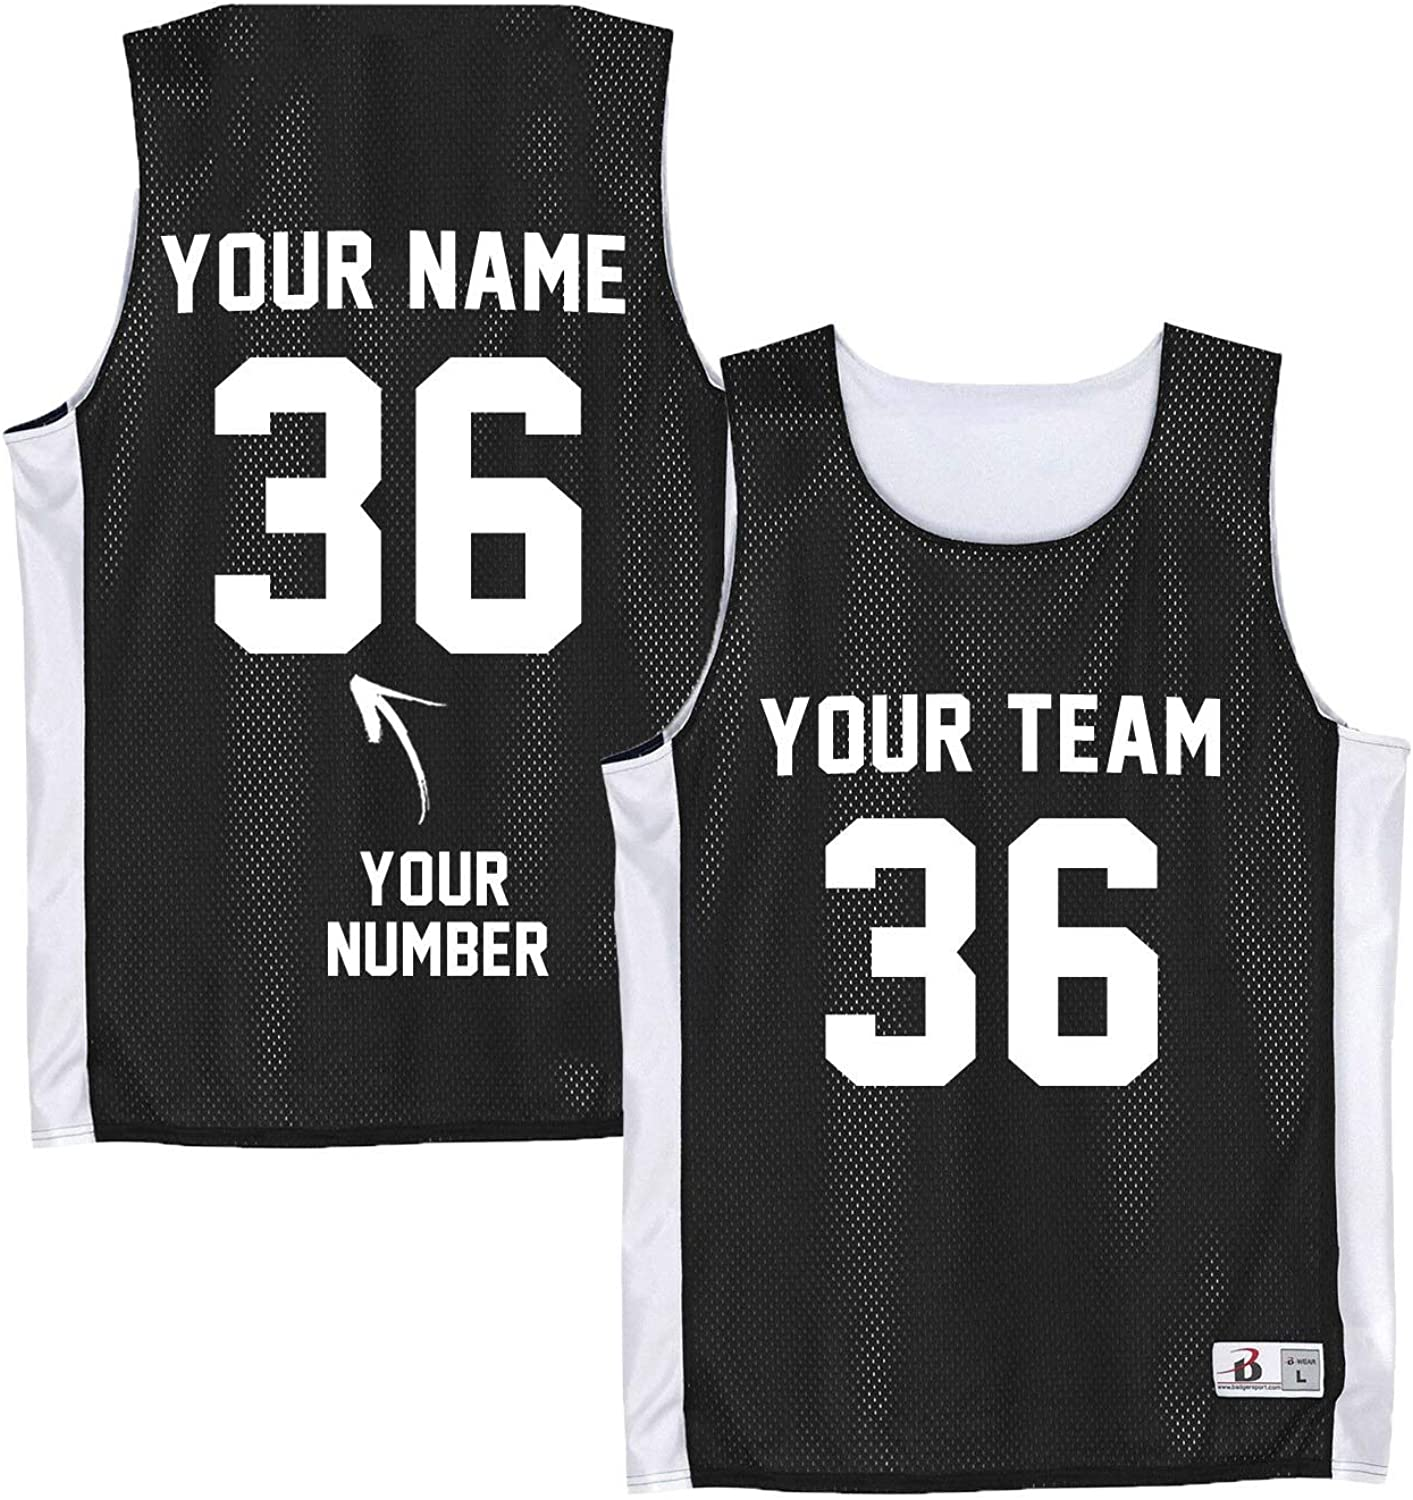 customize your own basketball jersey